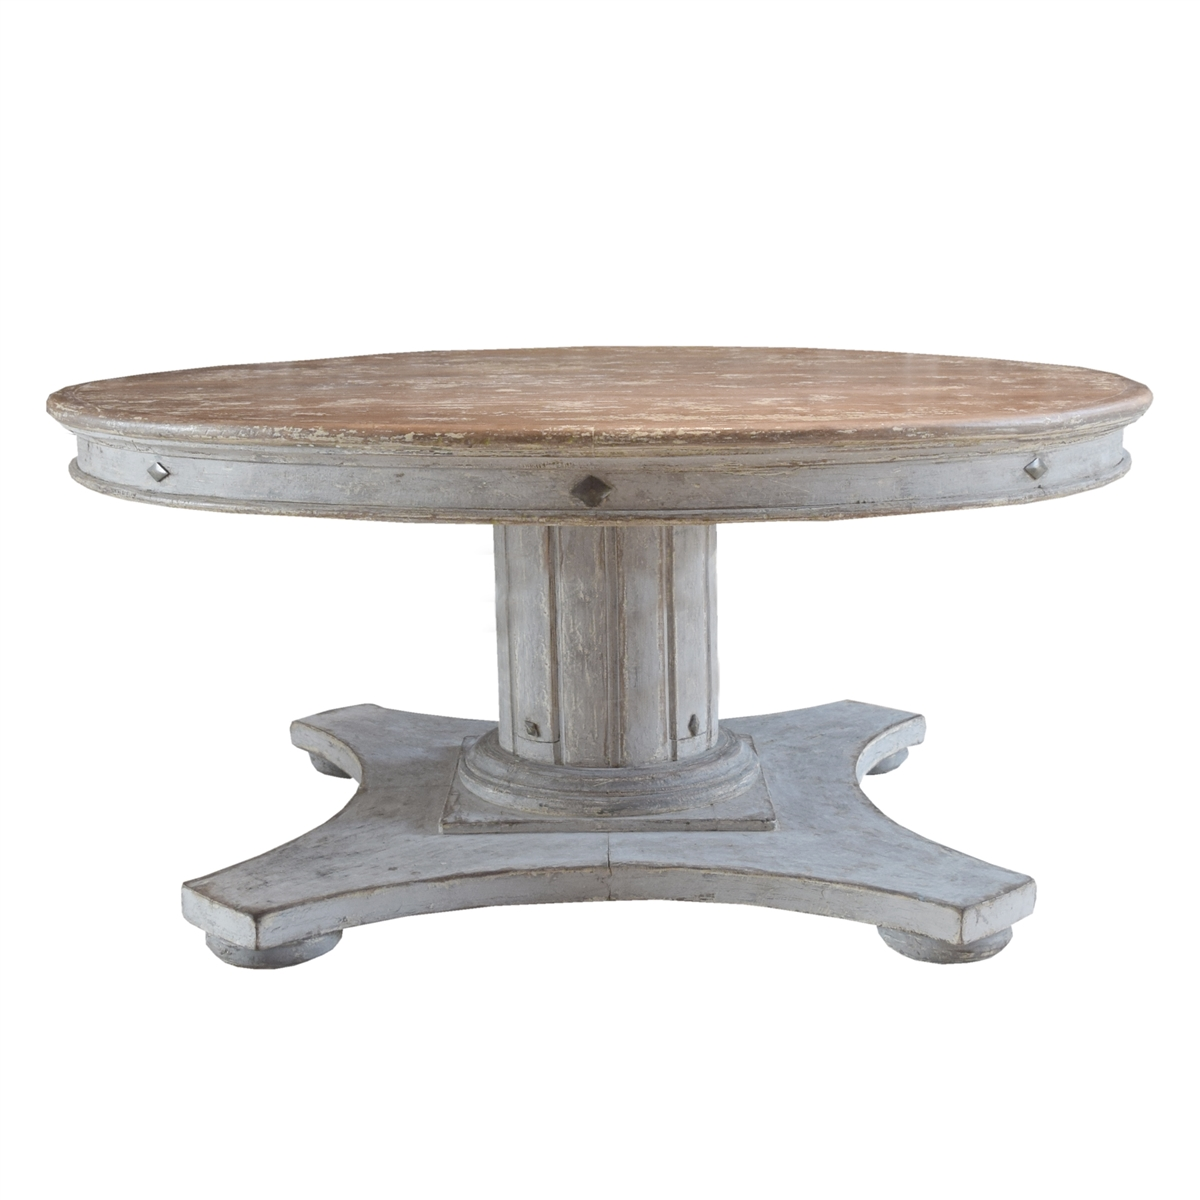 Italian Round Wood Dining Table With Leaf